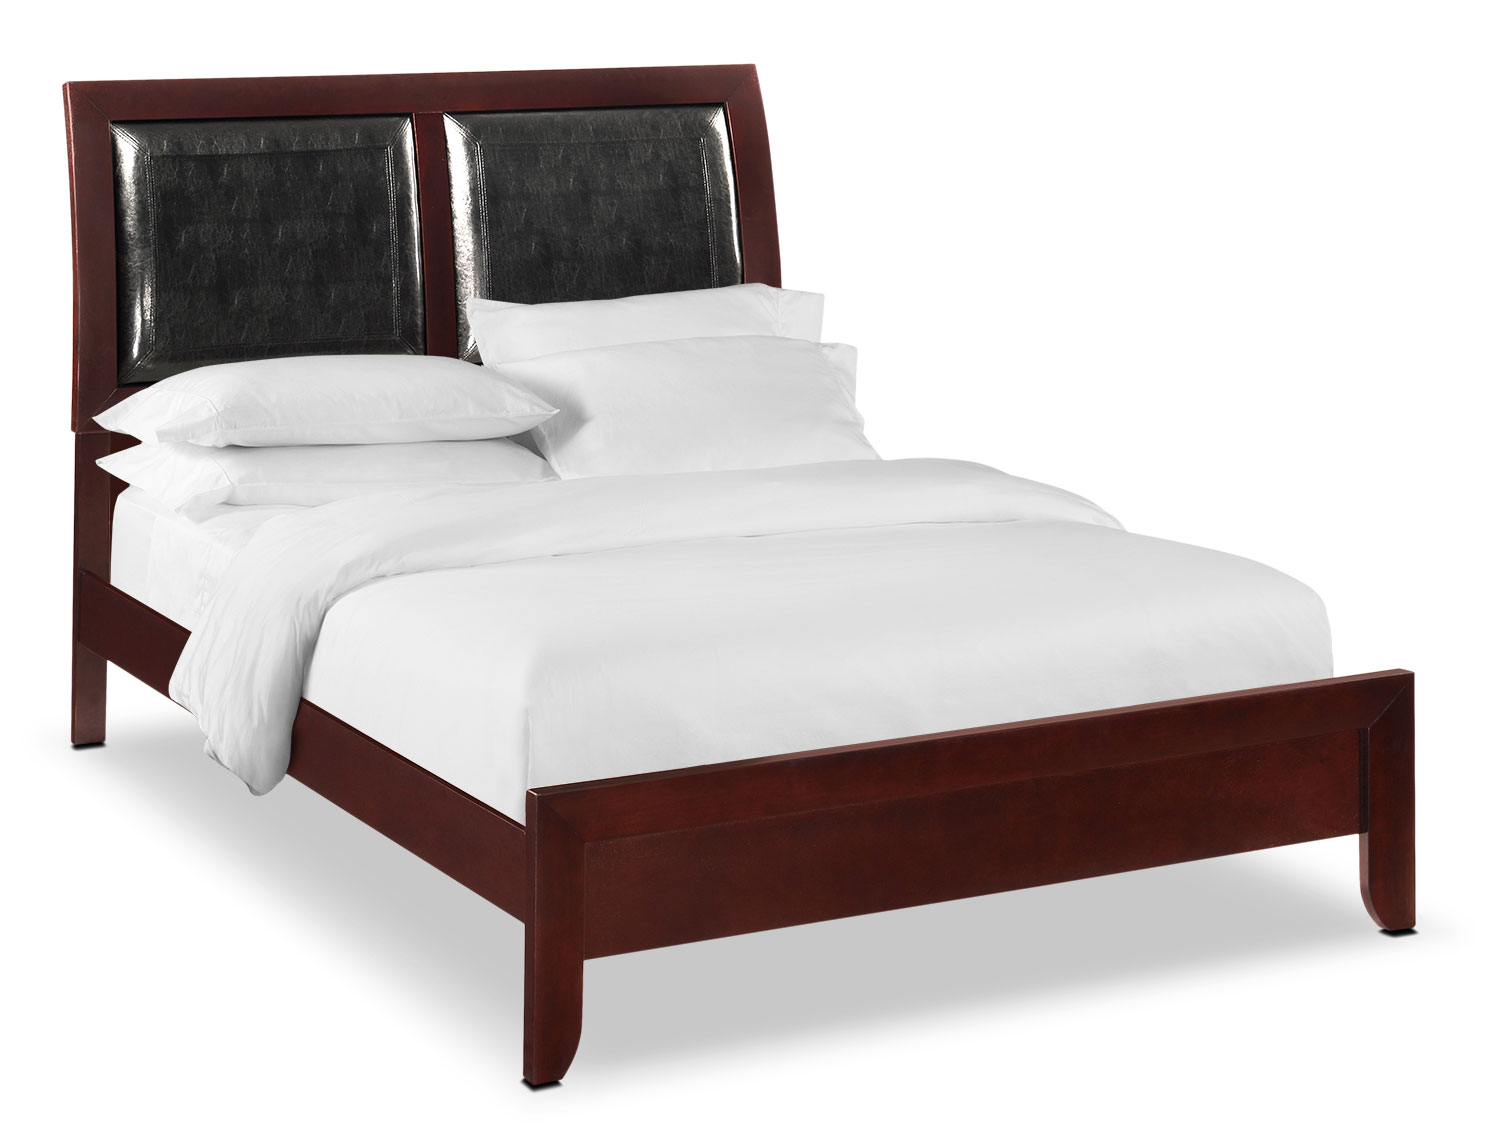 Bedroom Furniture - Braden Queen Upholstered Bed - Merlot